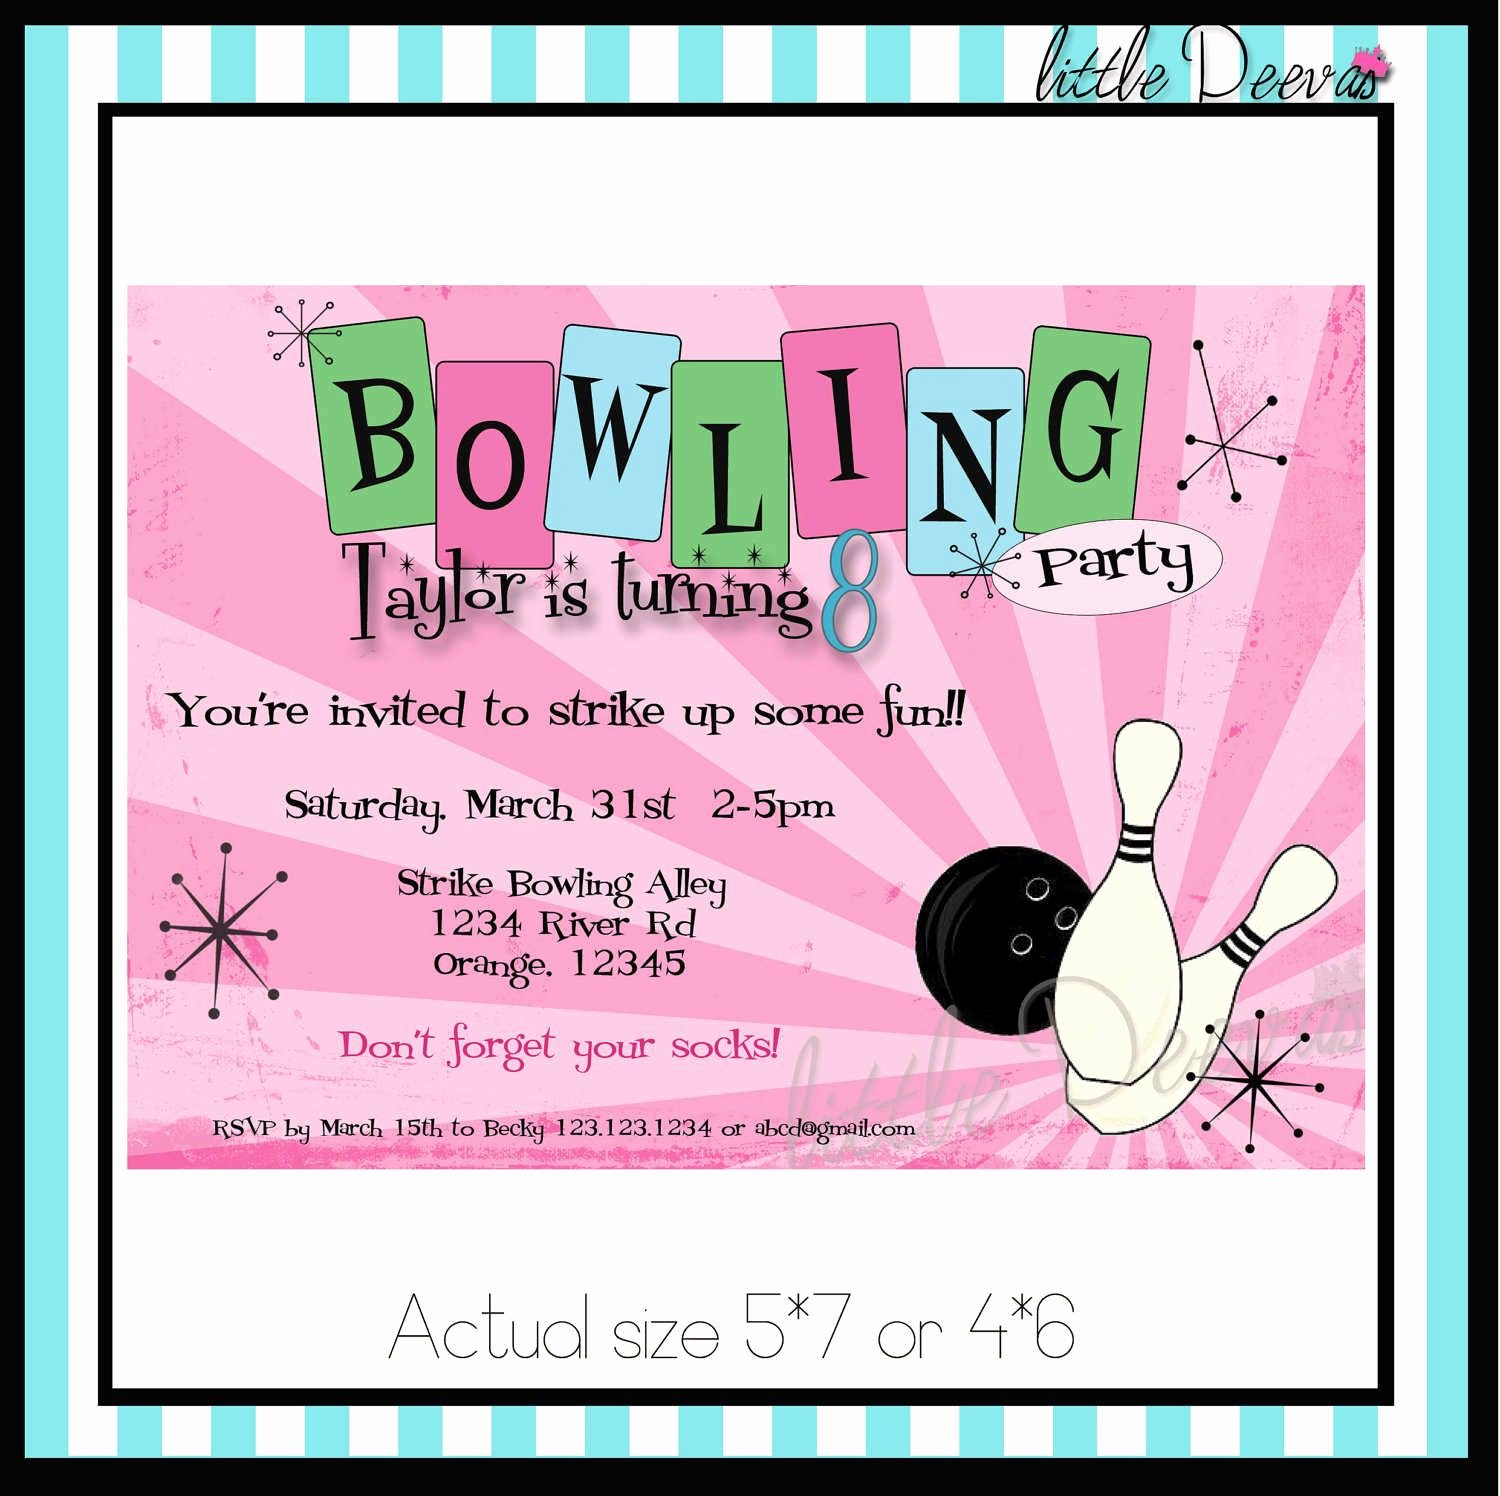 Bowling Party Invitations Templates Free Lovely Free Printable Kids Bowling Party Invitations Download Get This Kids